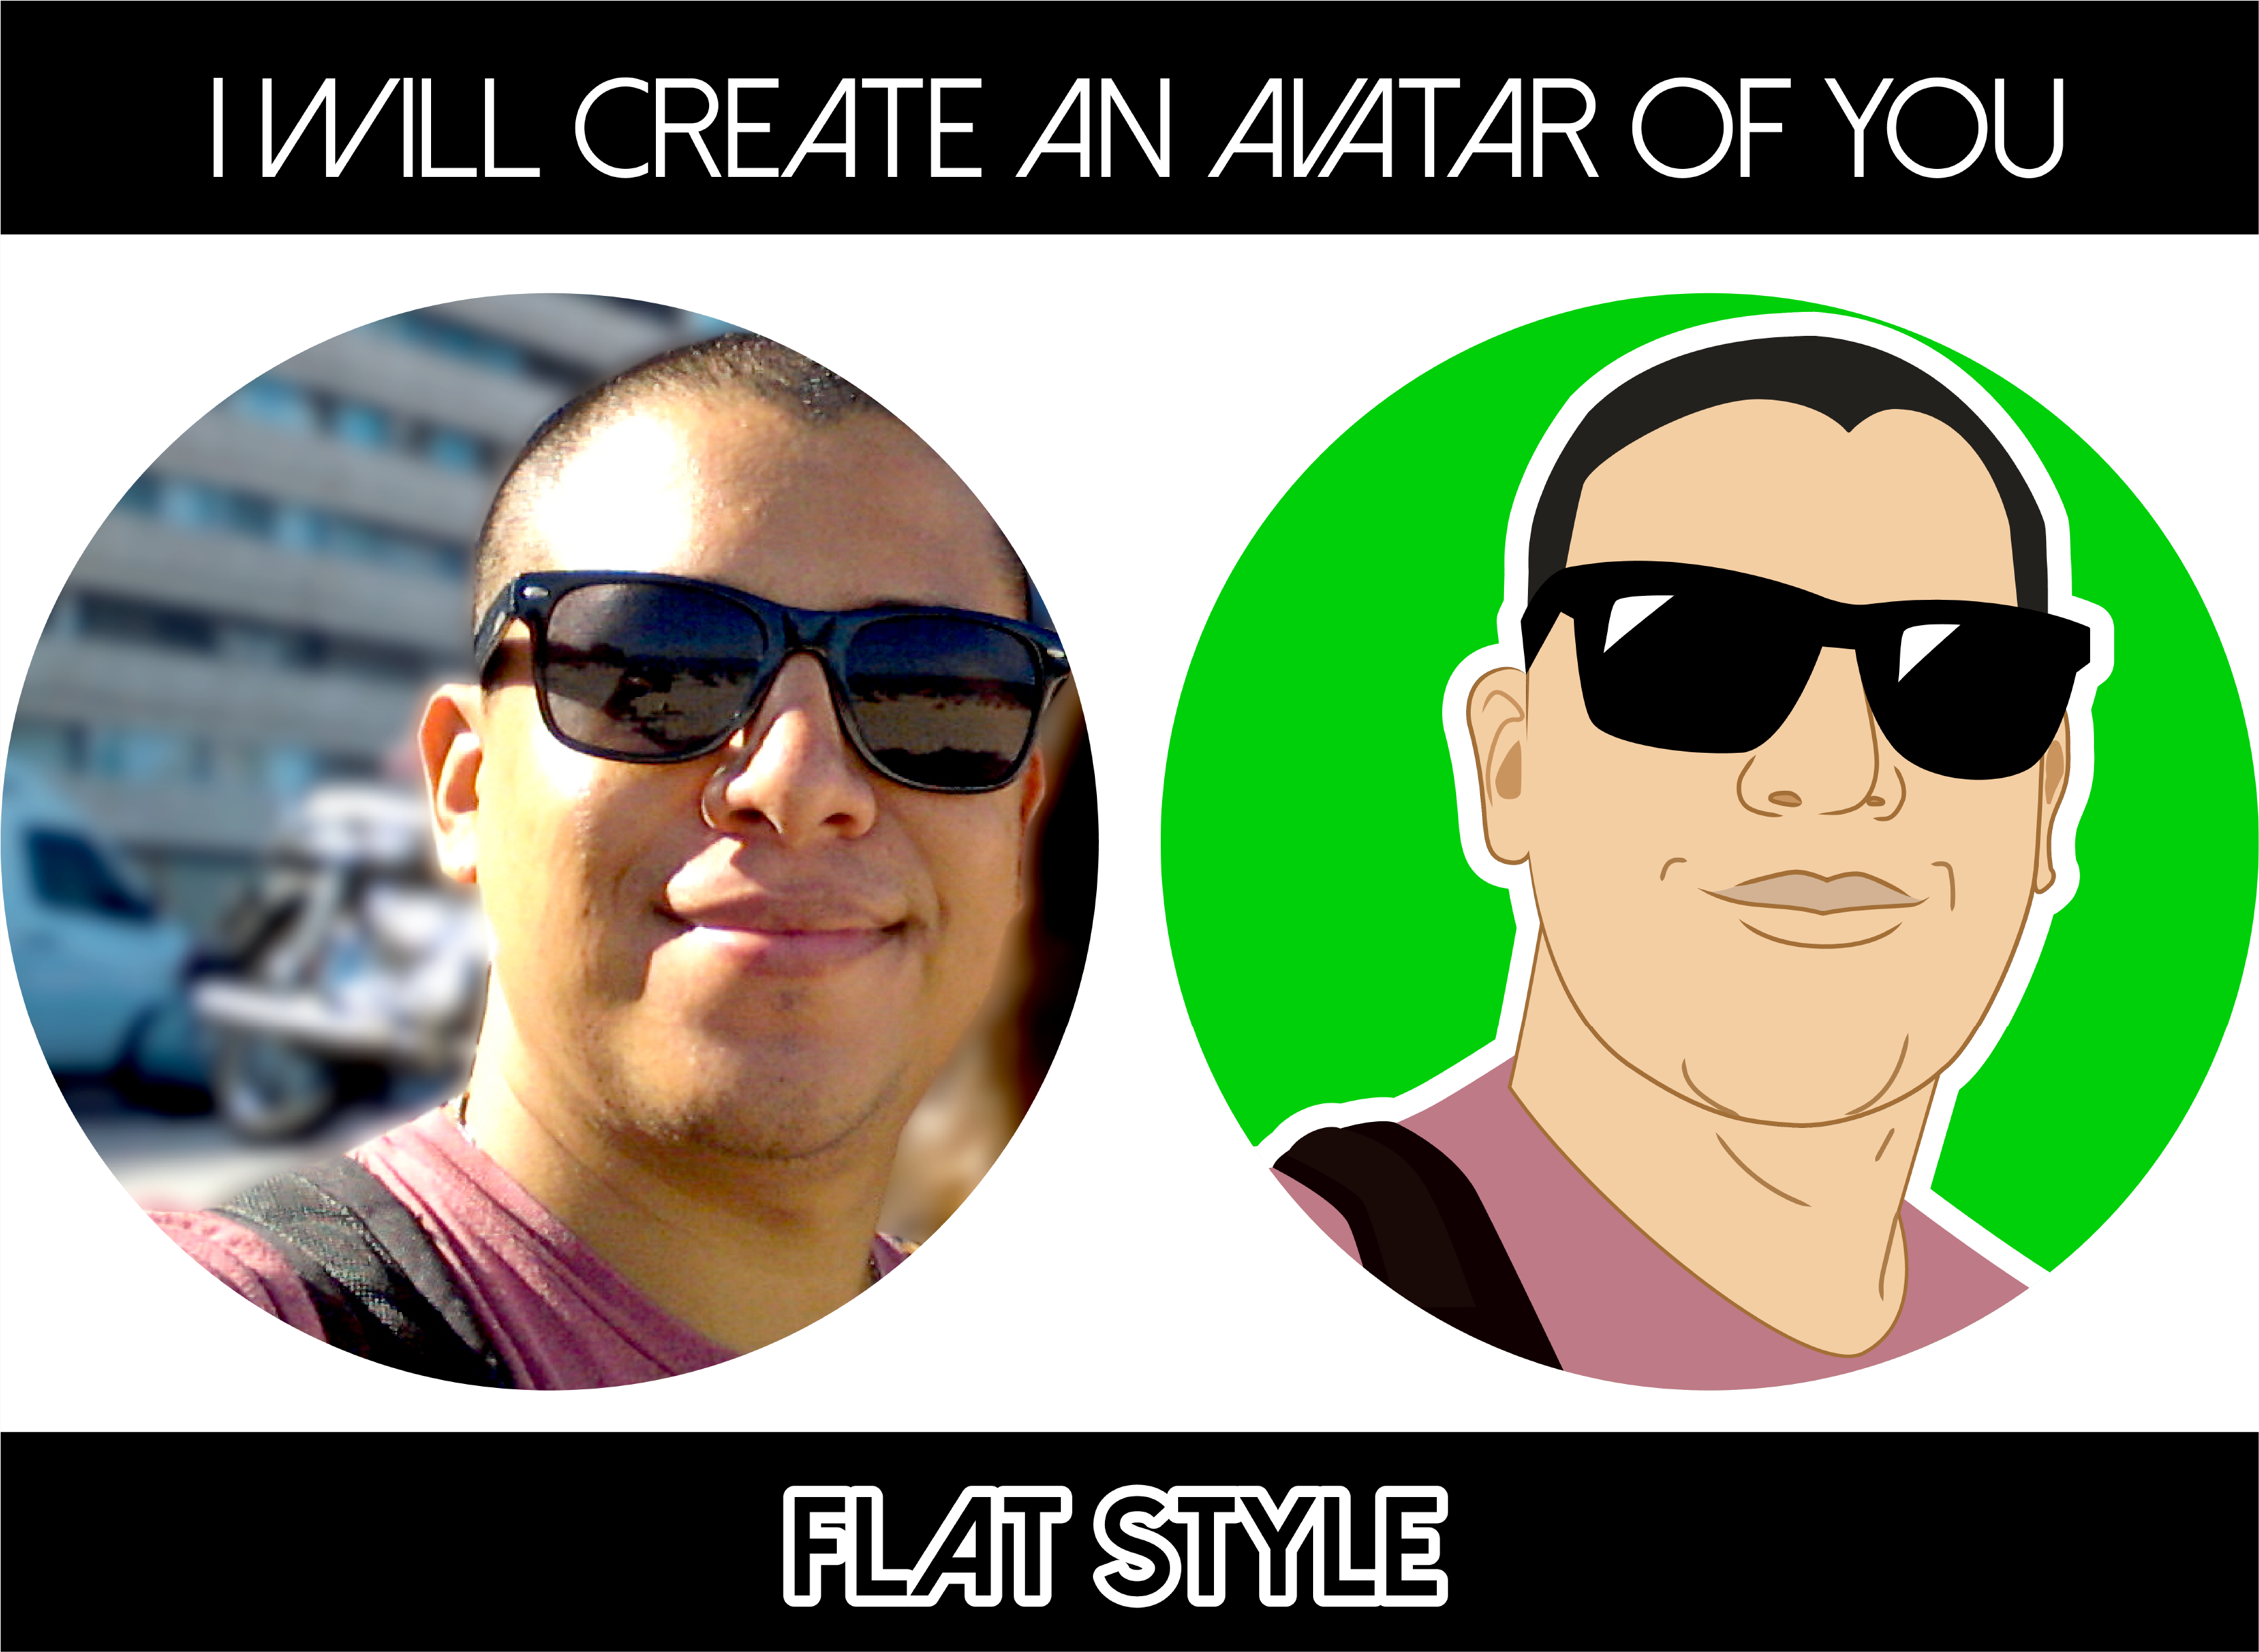 create a flat avatar of you front or sided